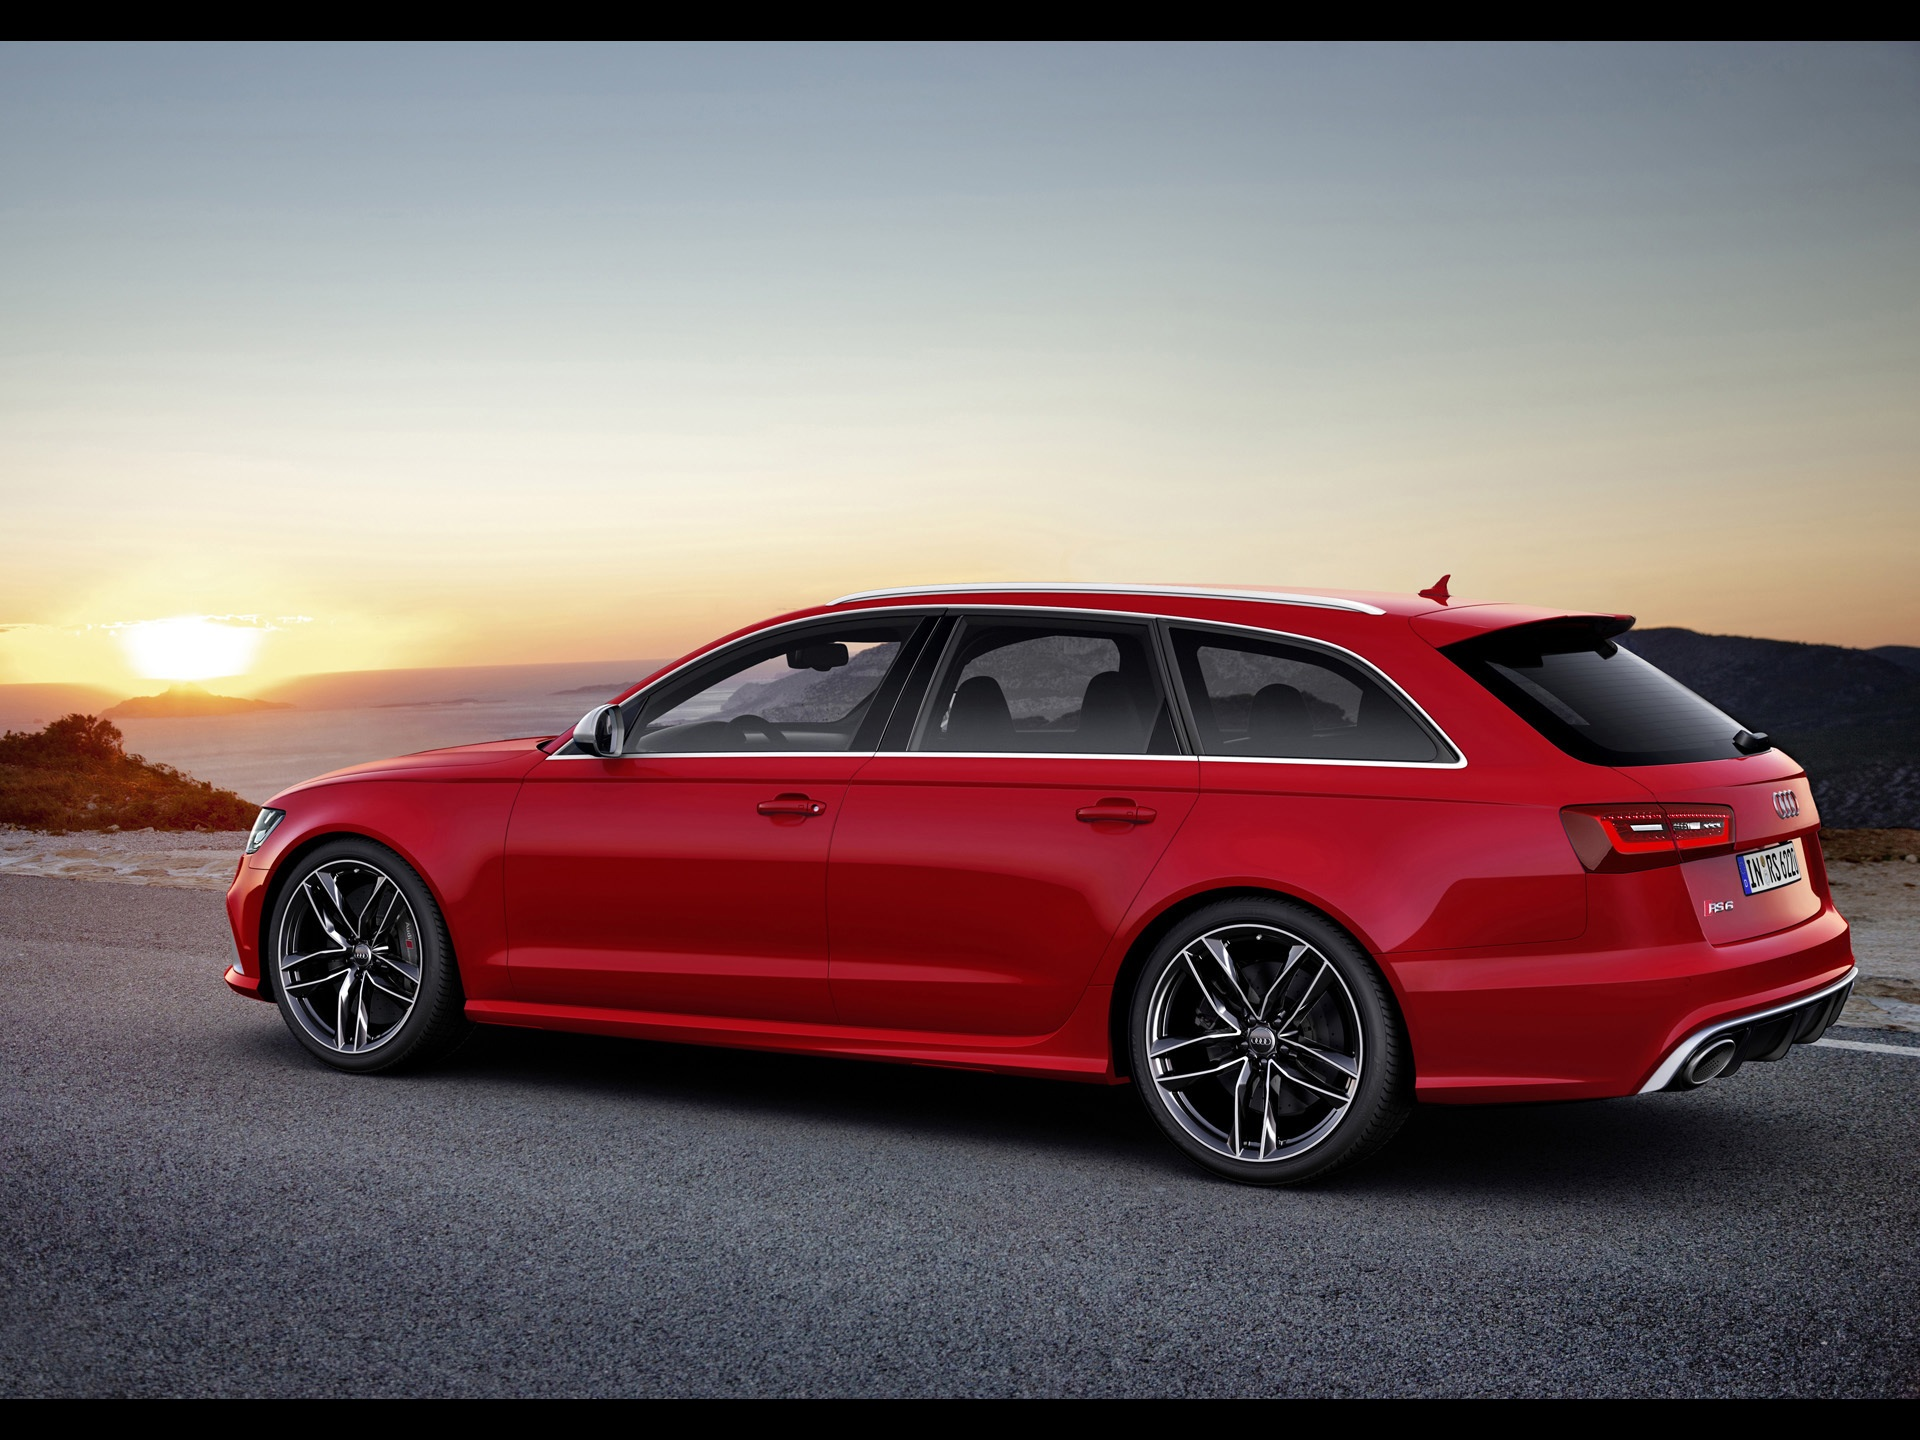 World famous cars image of audi rs6 the red car in stop for Sun motor cars audi